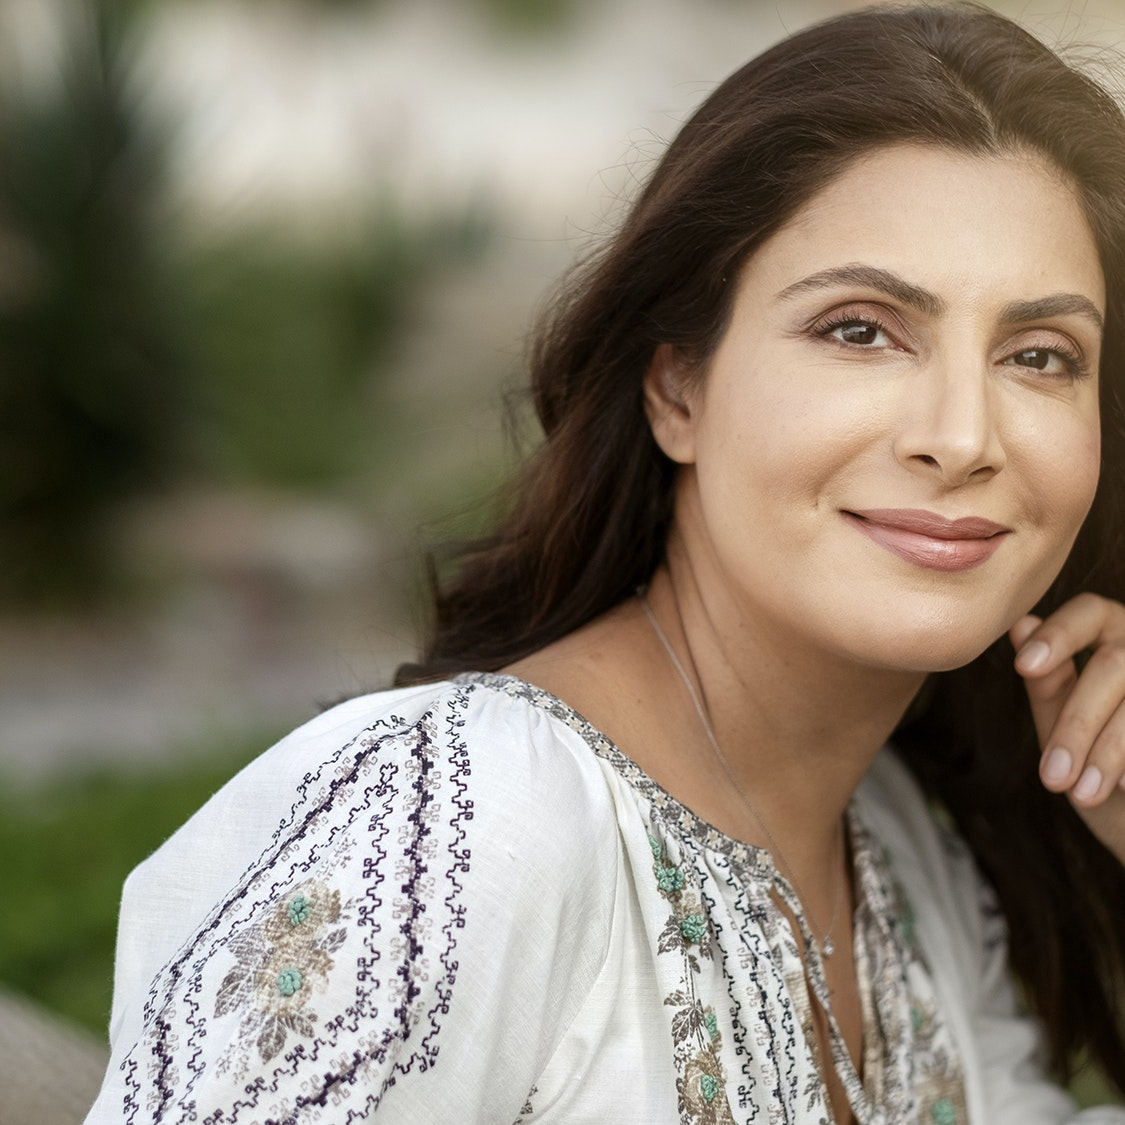 How This 44-Year-Old Dubai-Based Doctor and Entrepreneur Keeps Her Skin Looking So Radiant